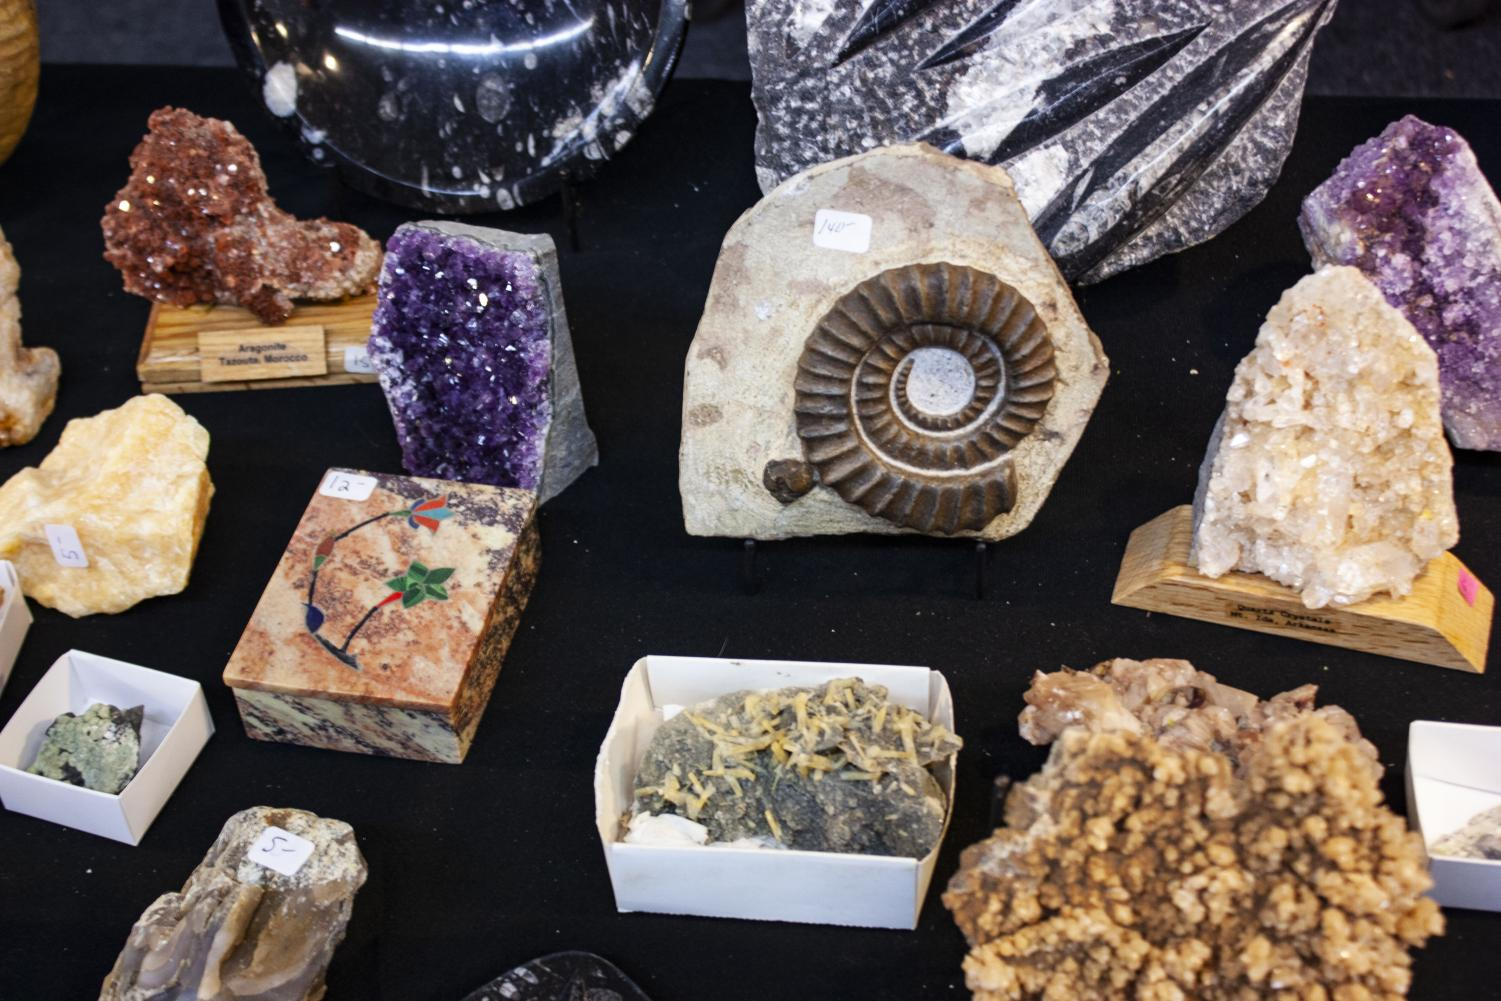 A+fossilized+spiral+shell%2C+known+as+an+ammonite%2C+is+shown+among+an+array+of+other+stones.+